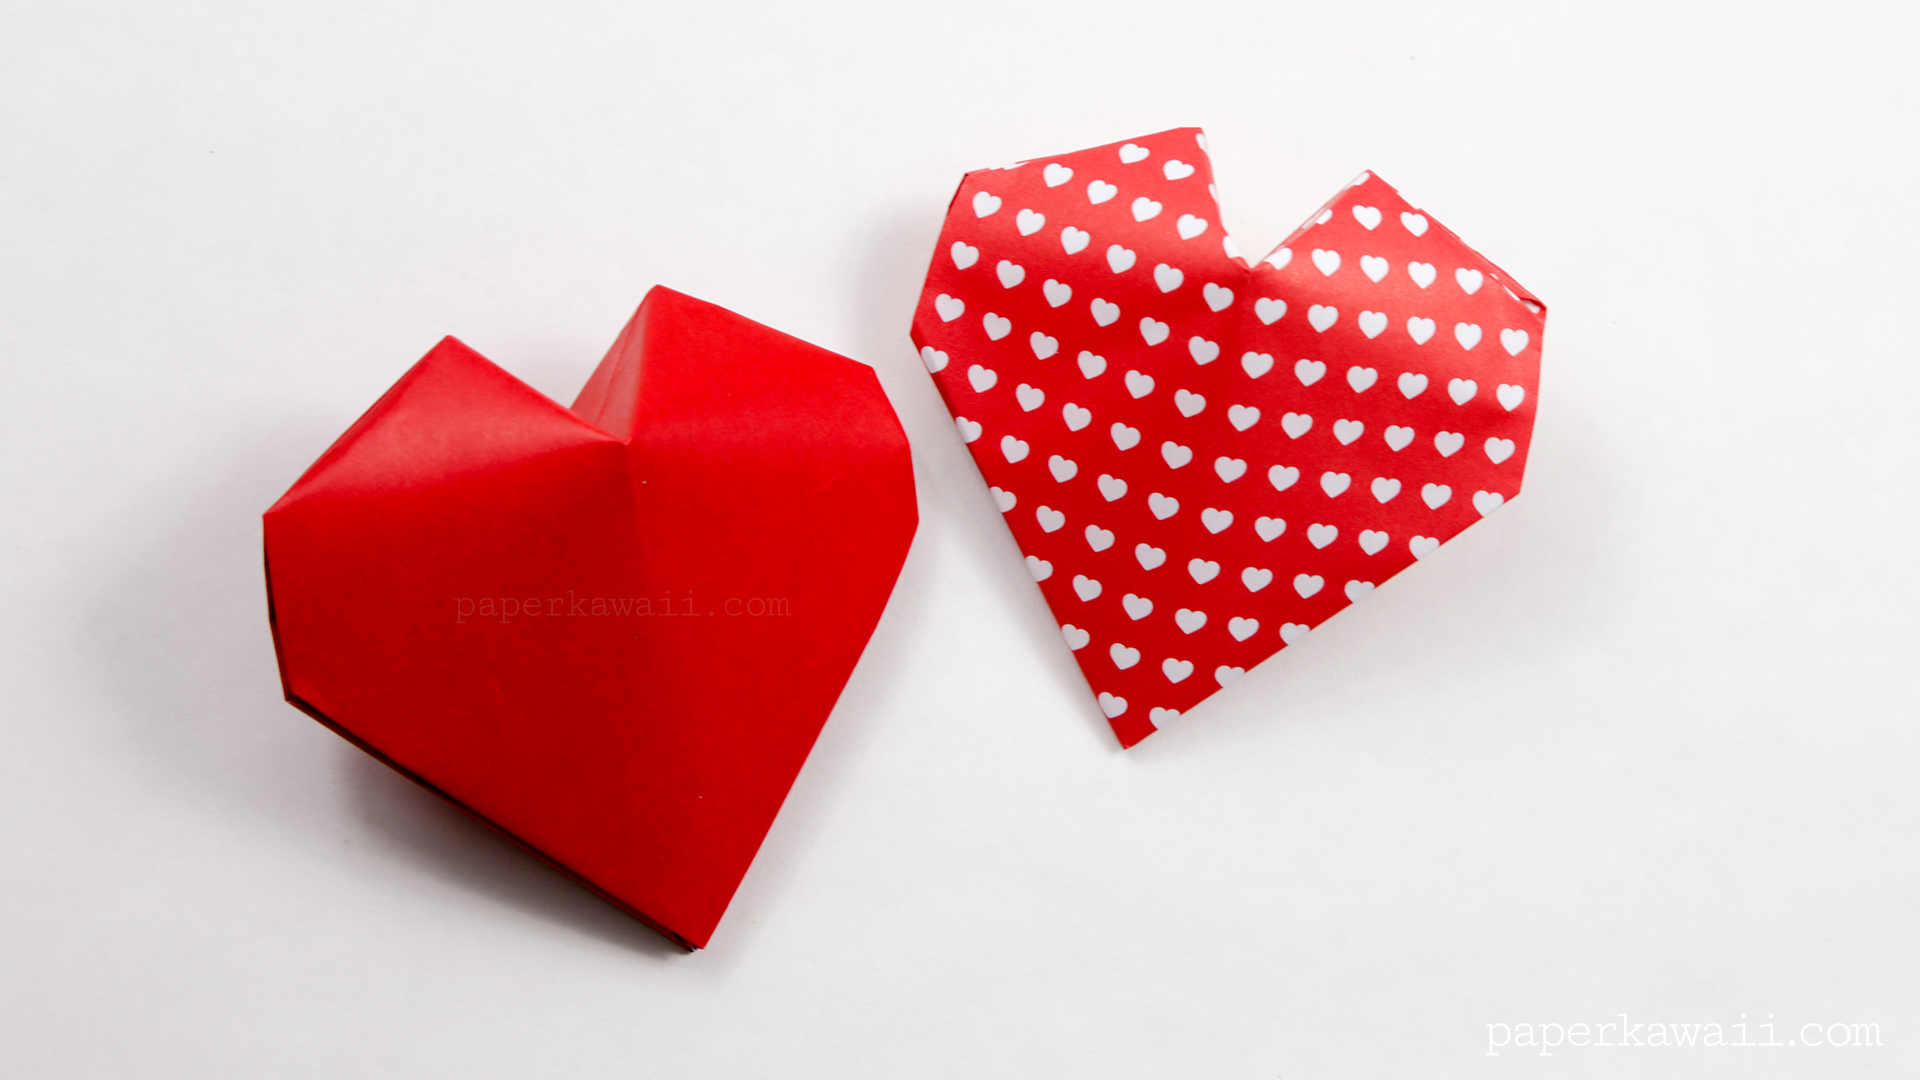 Origami 3D Puffy Heart Instructions - Paper Kawaii - photo#30